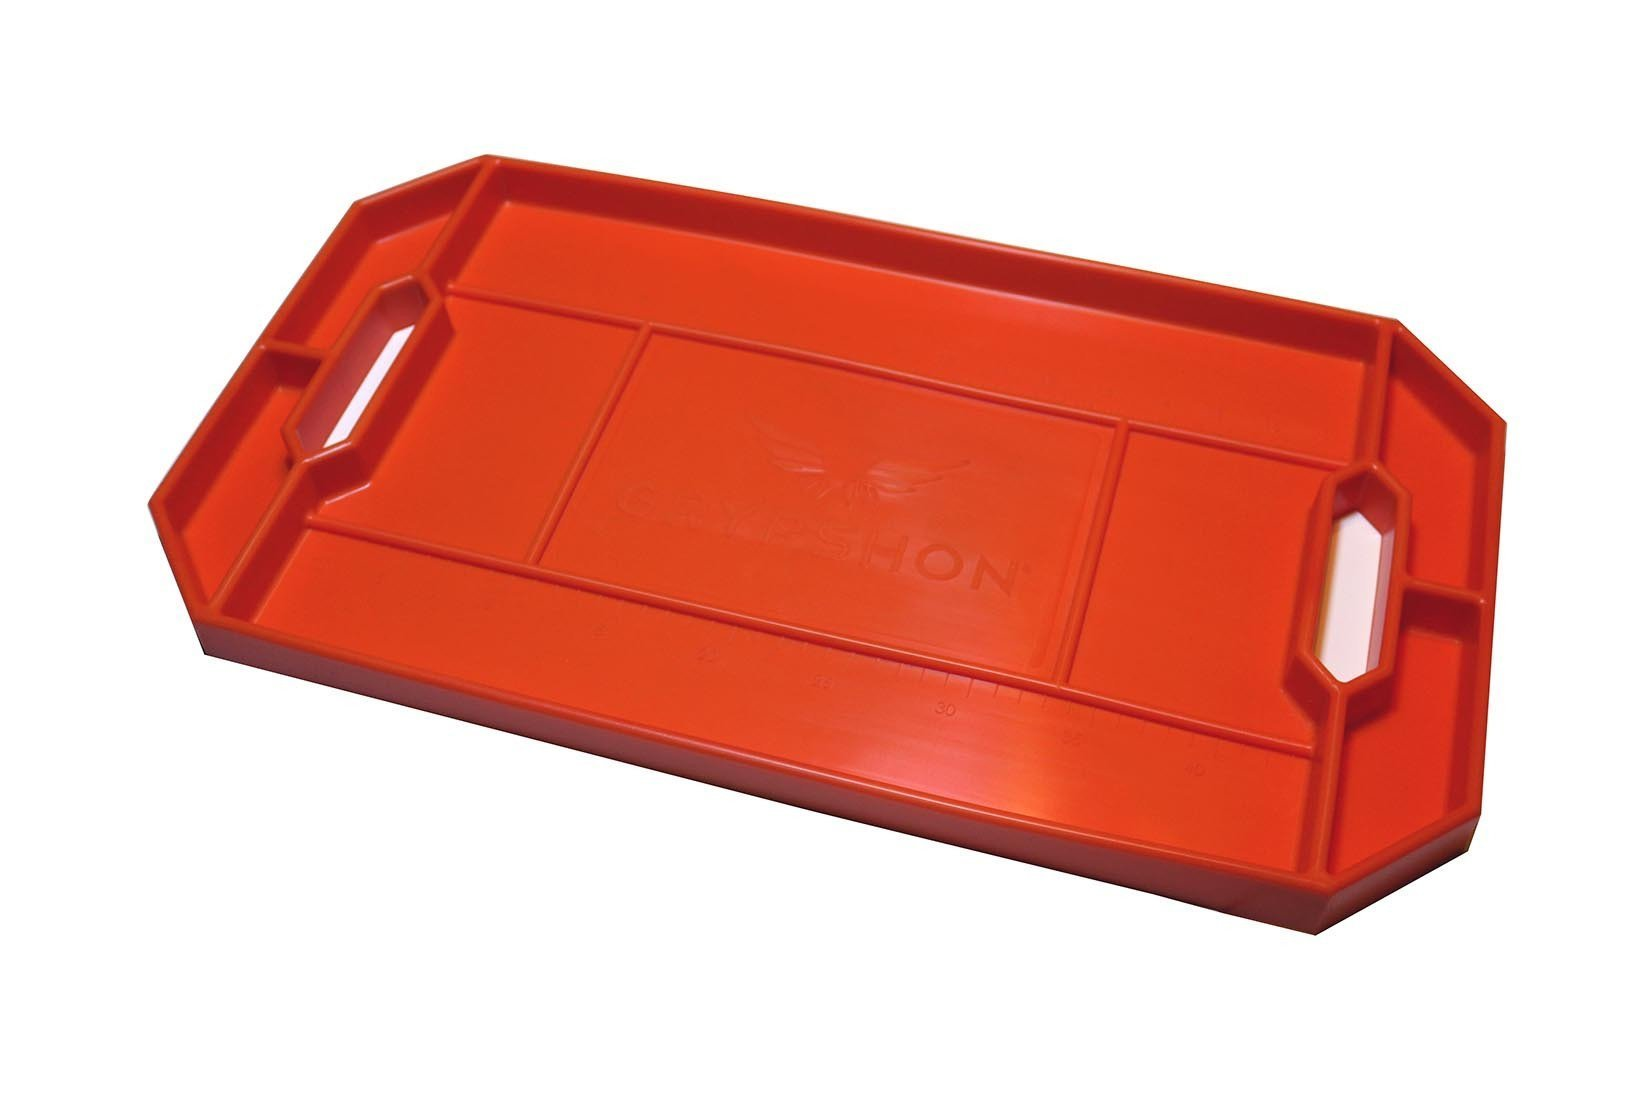 Grypmat RFGM-CR01S Tool Tray, Grypmat, 12 x 22 in, Rectangular, 1 in Thick, Chemical Resistant, Silicone, Orange, Each